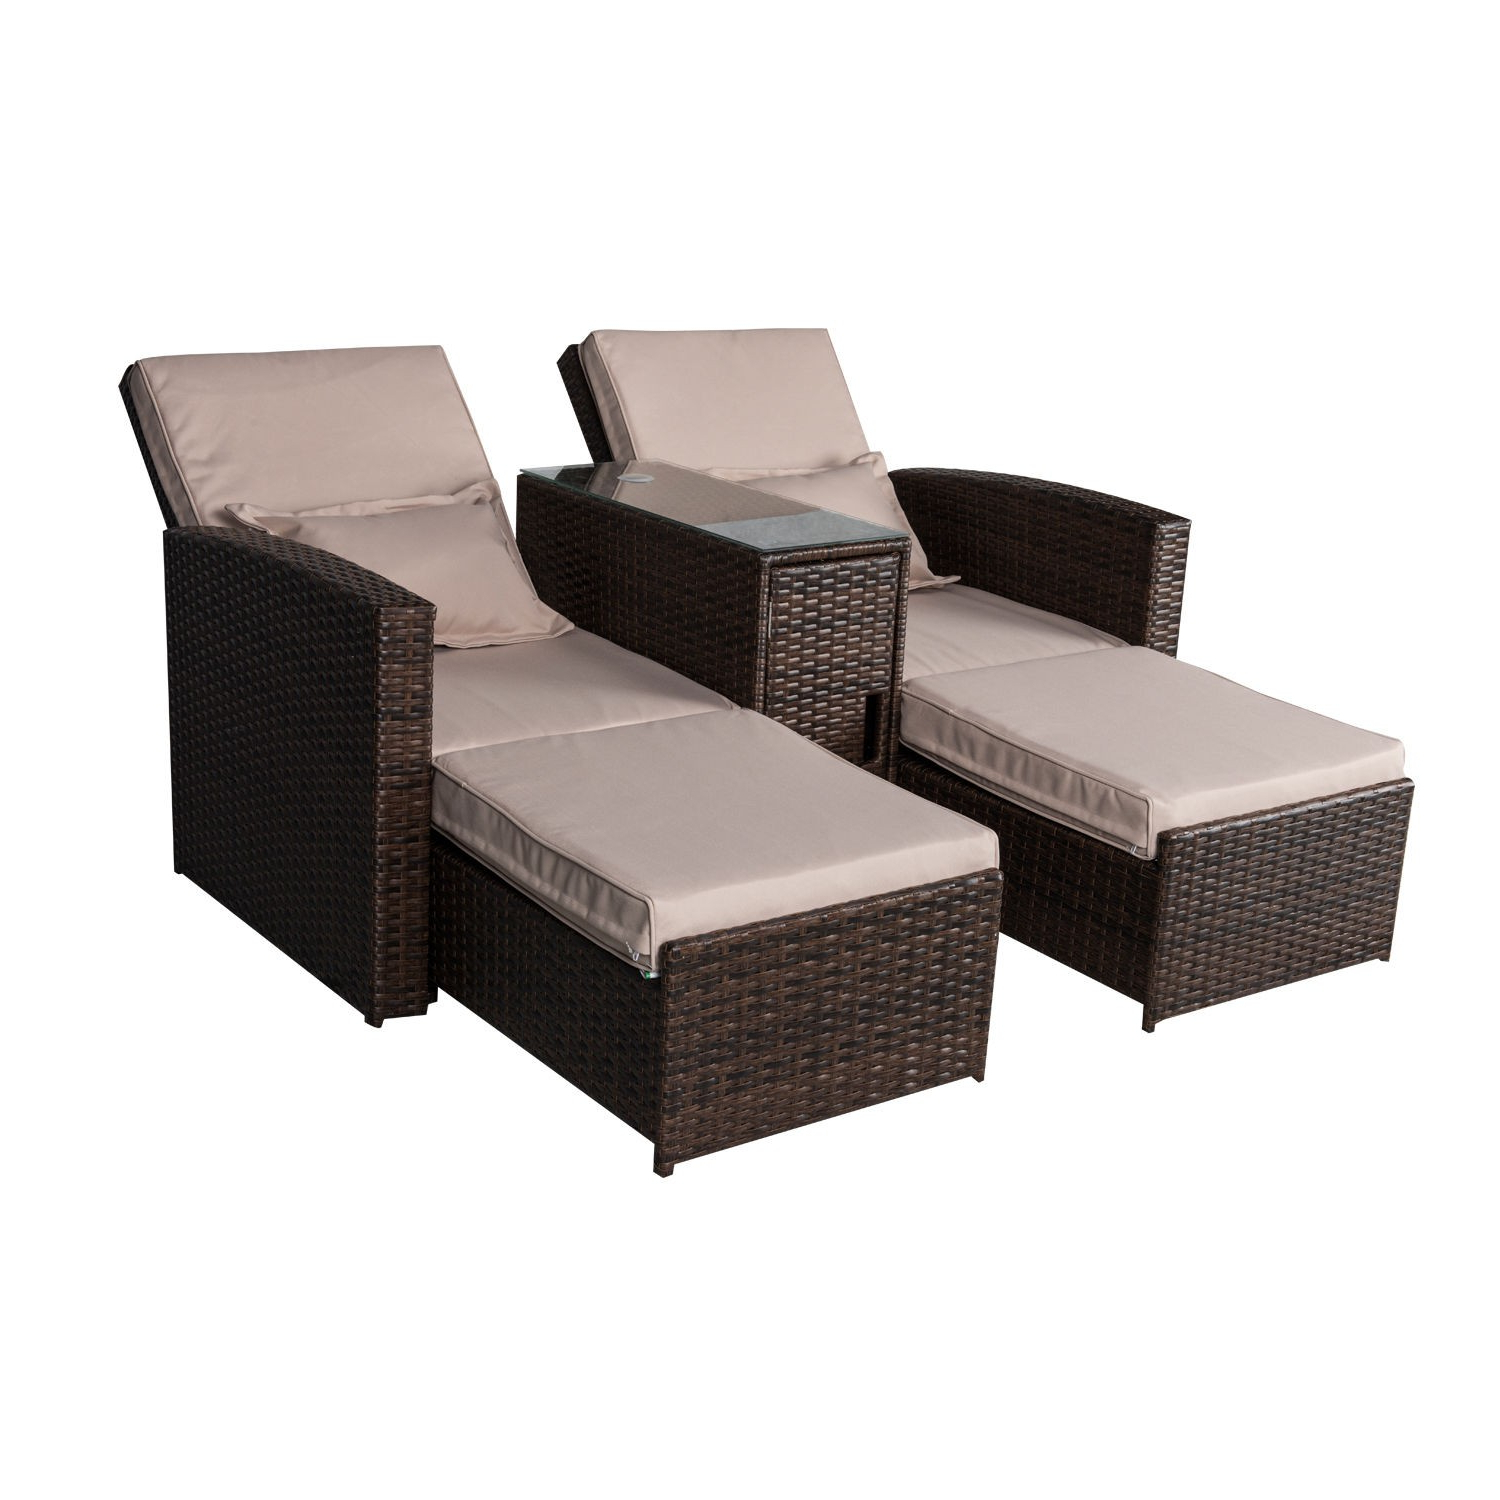 Well Liked Colby Manual Reclining Sofas Intended For Outsunny 3 Piece Outdoor Rattan Wicker Chaise Lounge (View 14 of 15)